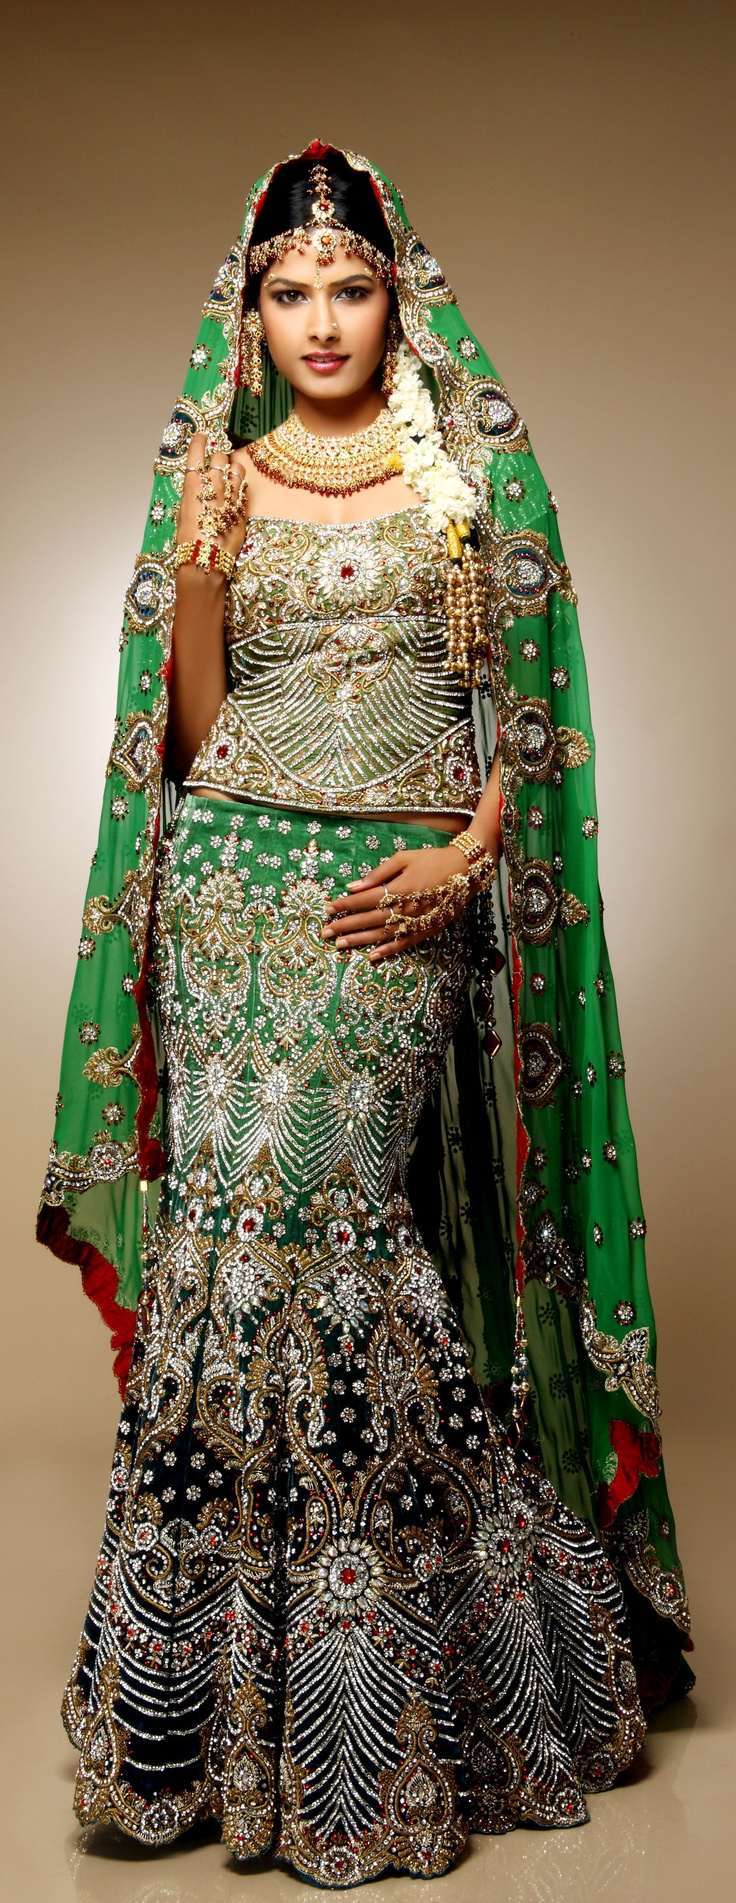 Velvet lehenga, which has a unique blend of green and deep teal blue, is made using georgette dupion with teal blue velvet. It is finished with maroon raw silk and has a heavily clustered butti of kundan, Swarovski and maal on the dupatta.